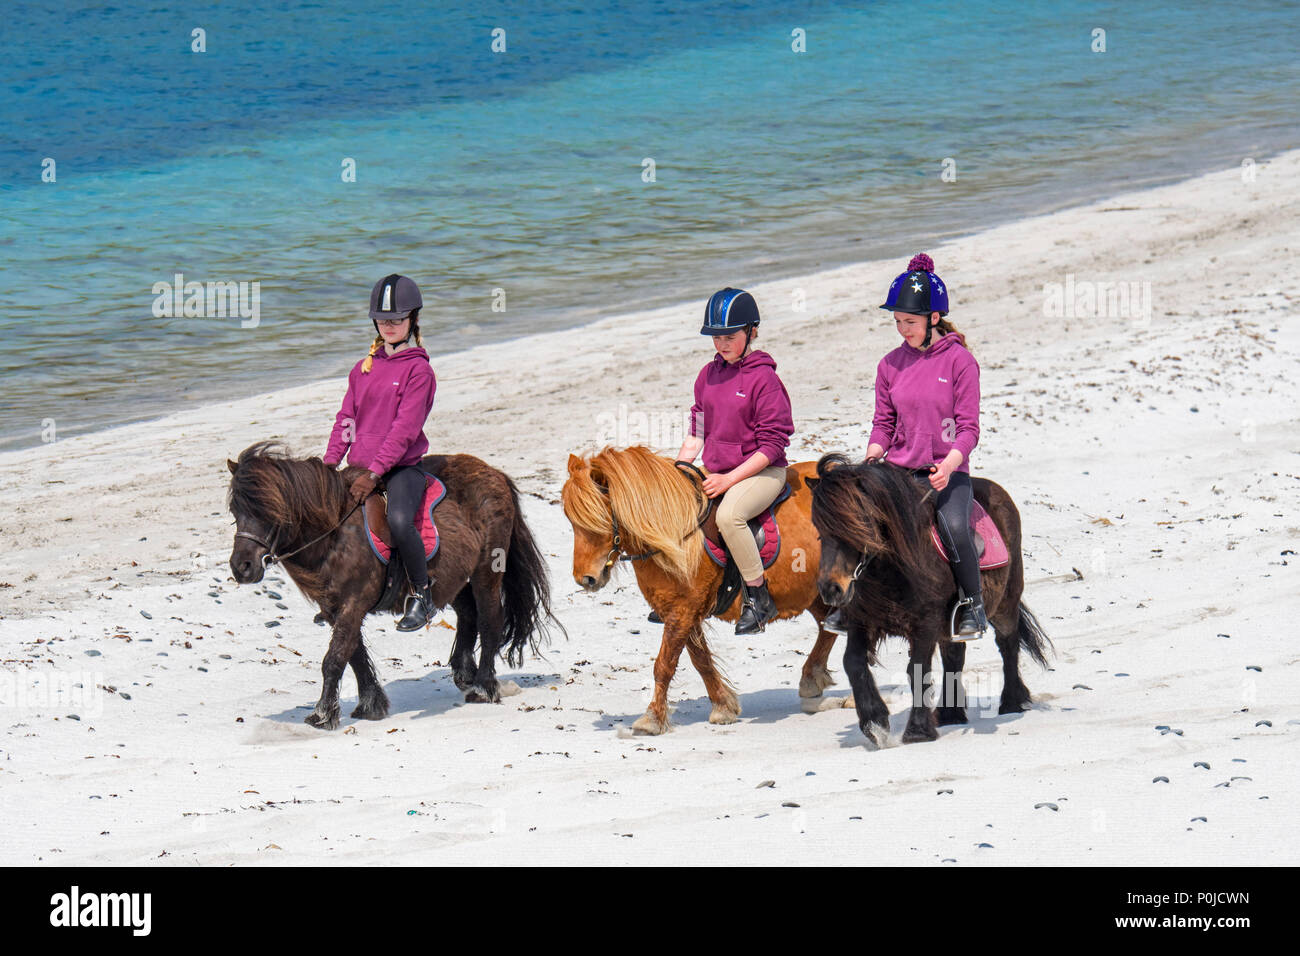 Three young girls / teenagers riding Shetland ponies on sandy beach along the Scottish coast on the Shetland Islands, Scotland, UK - Stock Image